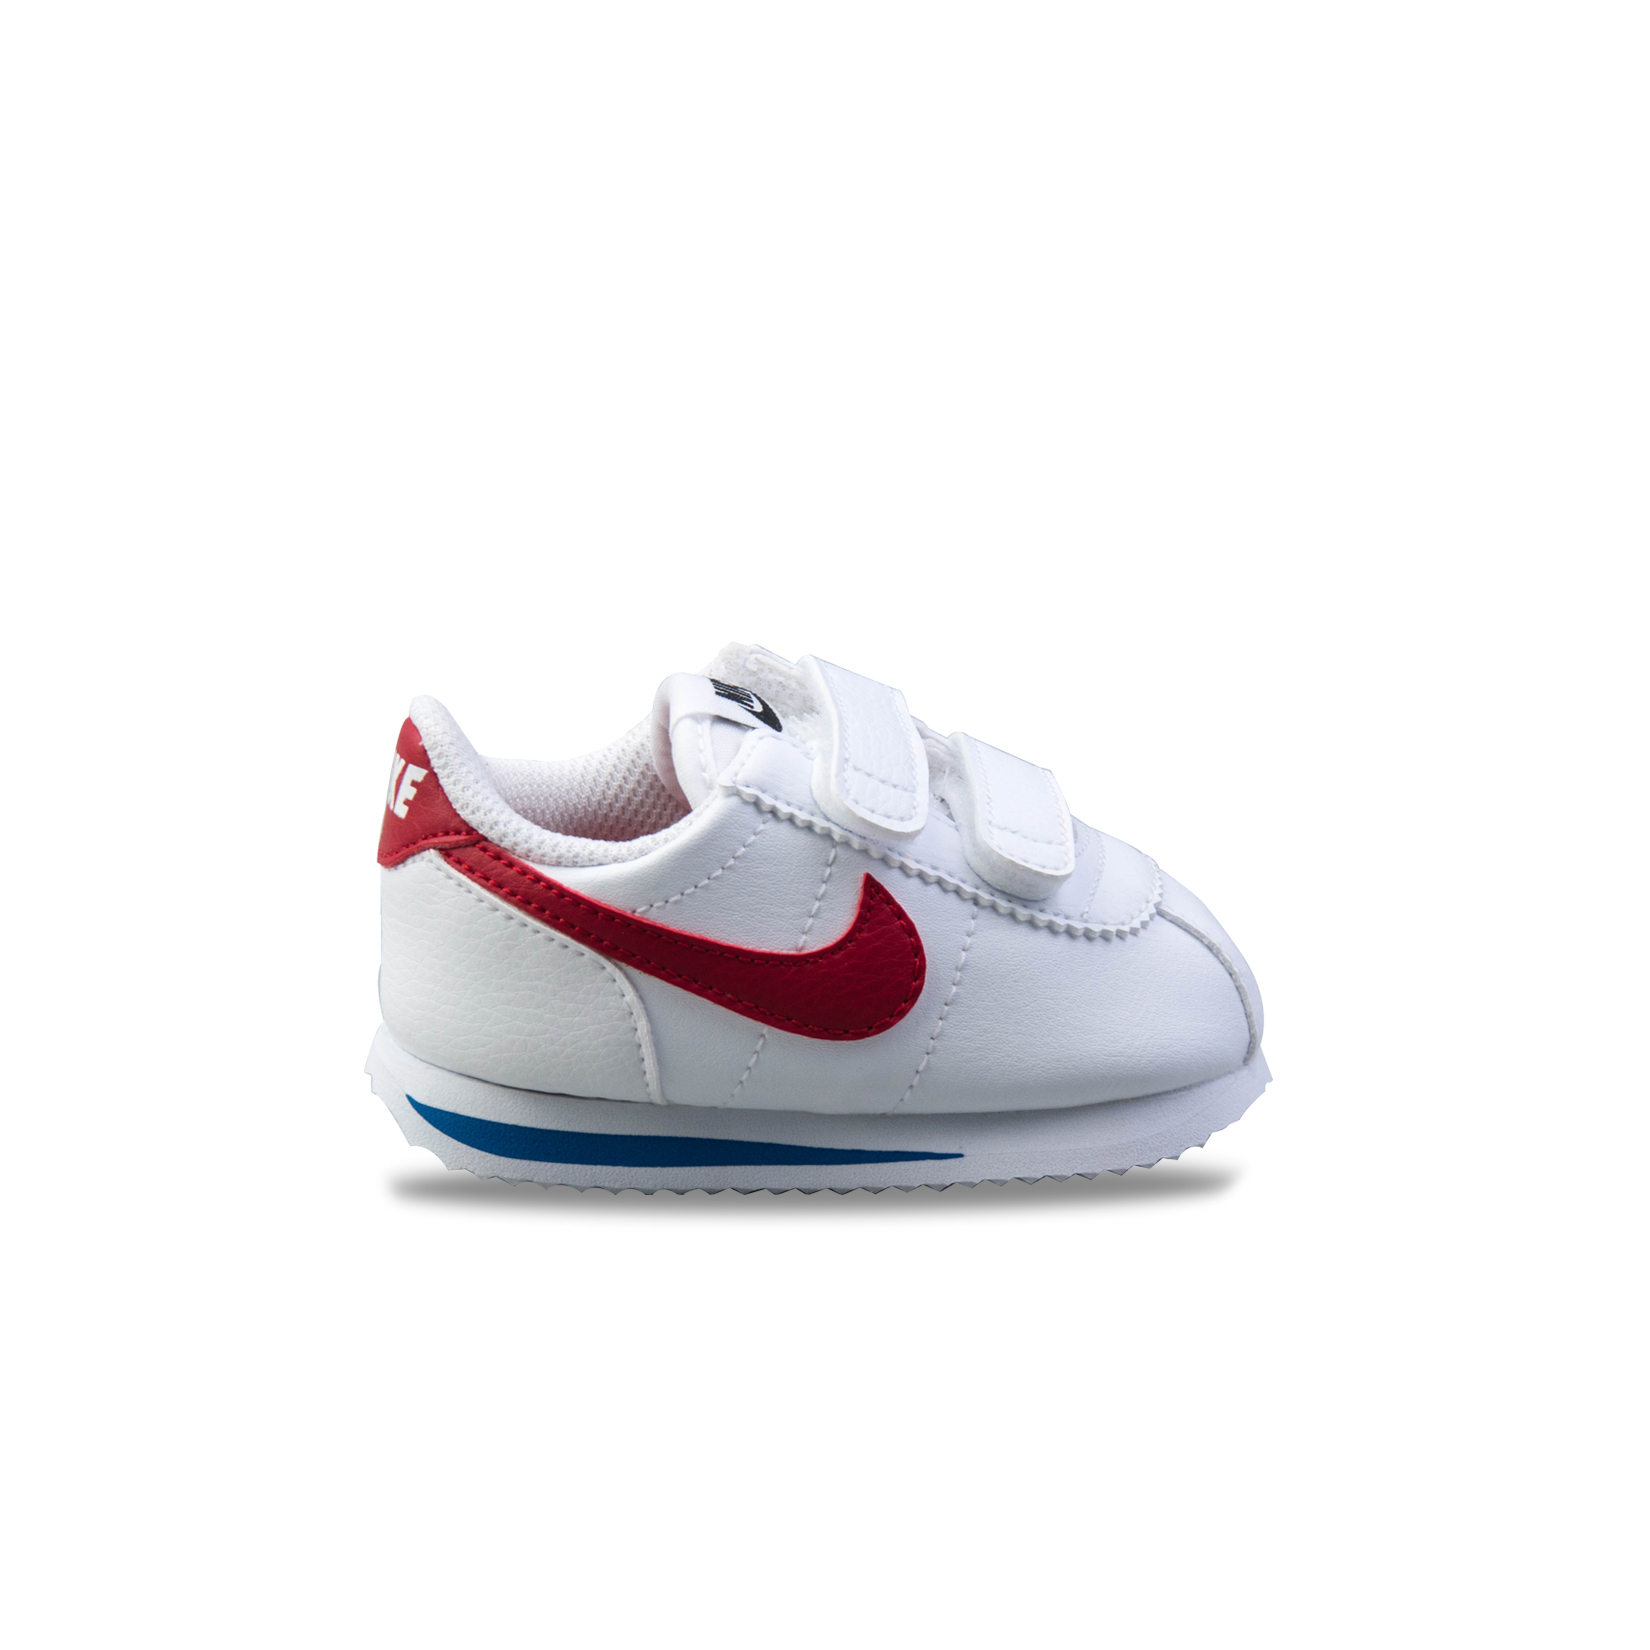 big sale 1d10d 2cabc Baby Shoes Nike Cortez White / Red | All-Sports.gr